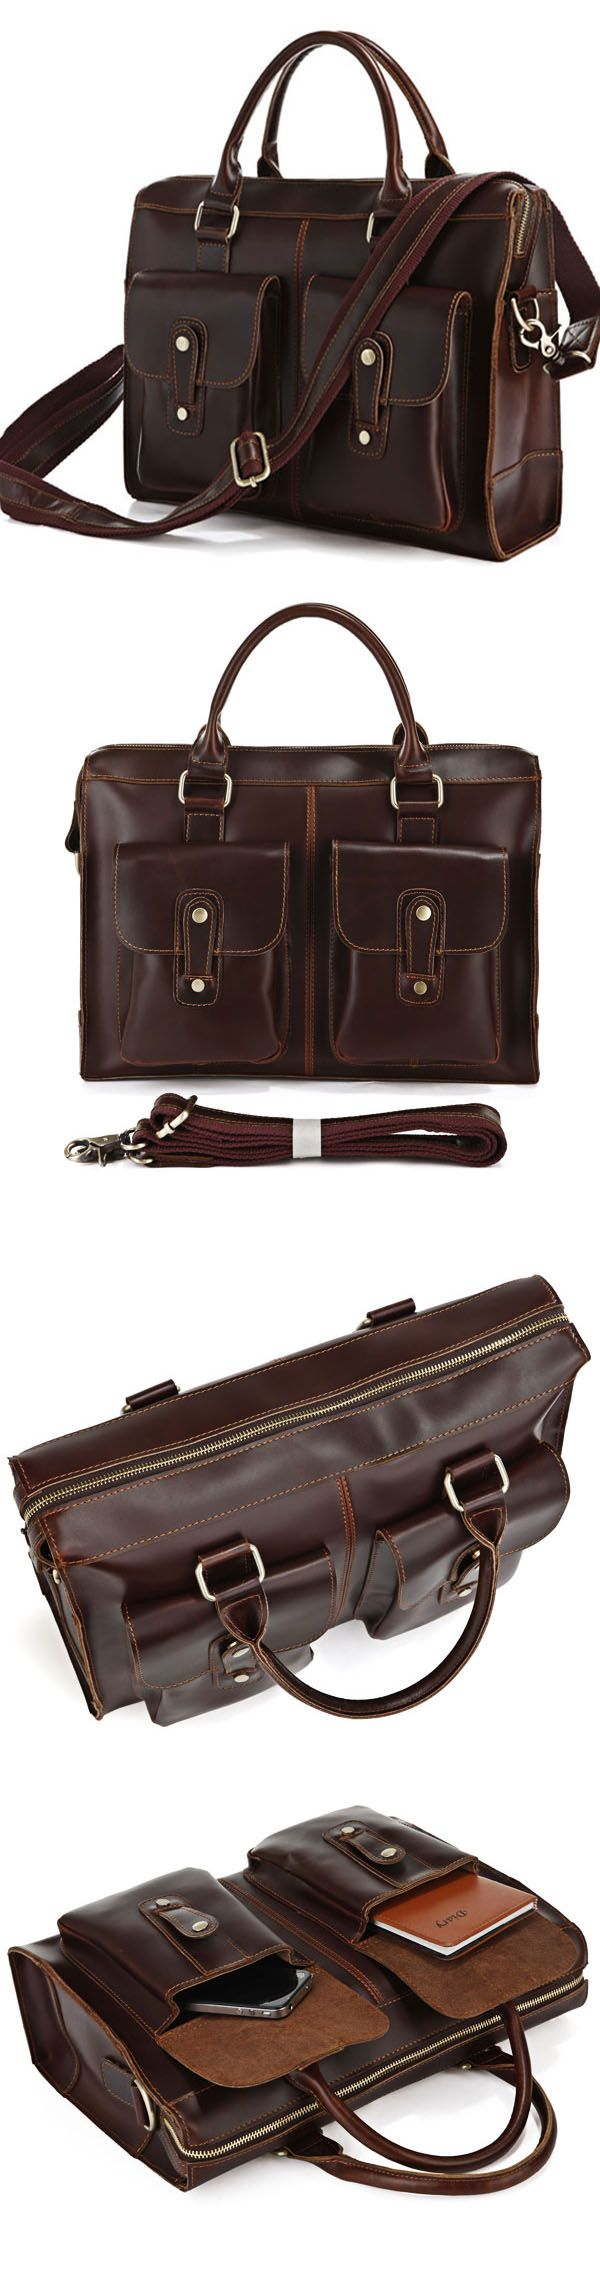 Genuine Hard Cowhide Messenger Bag Briefcase Handbag Laptop Computer Bag Business Travel Tote